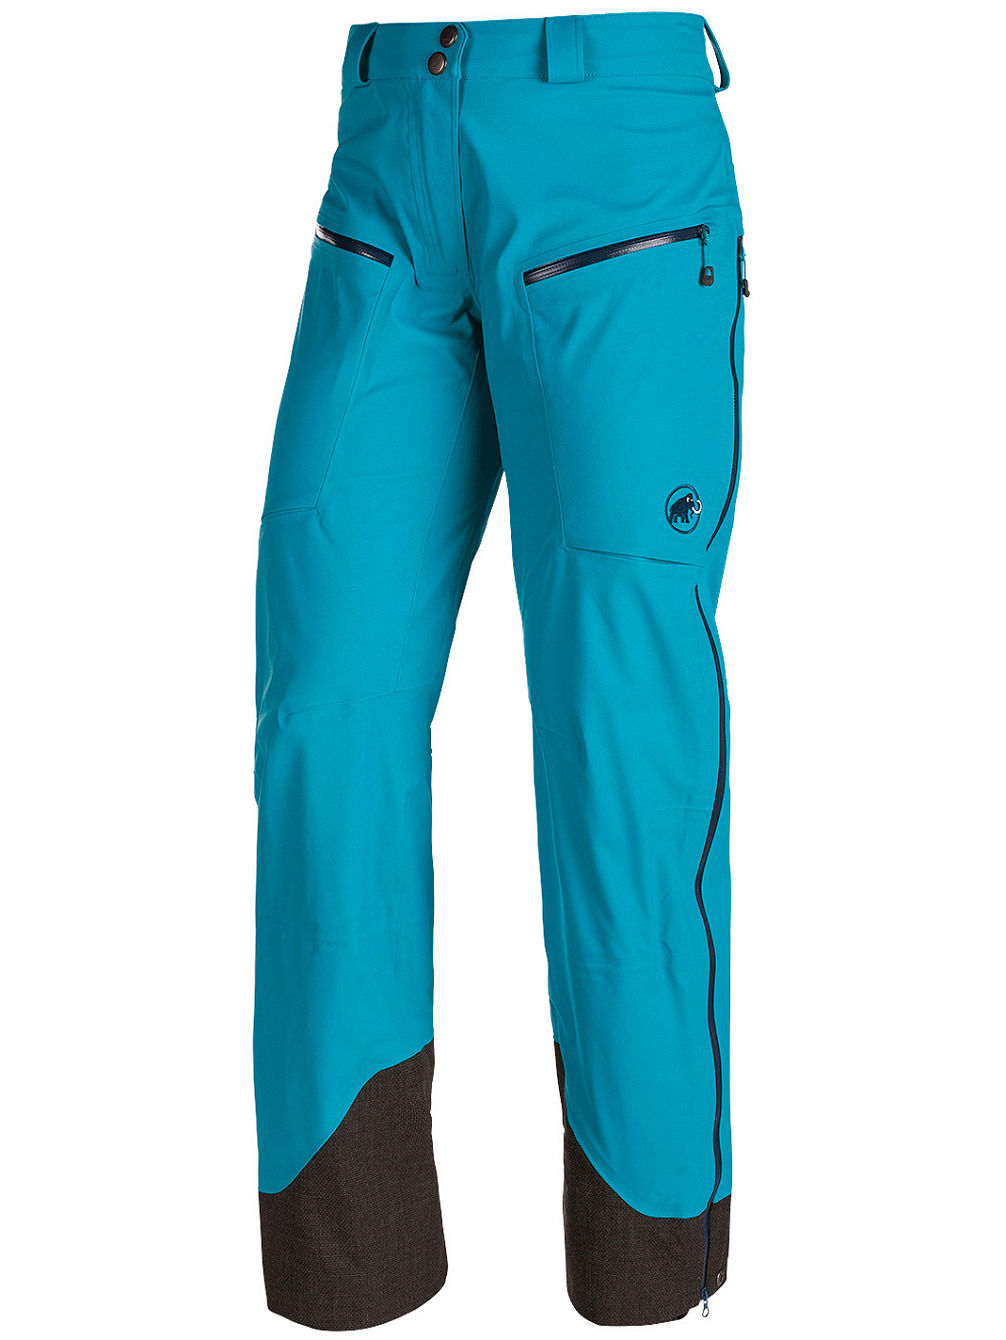 Luina Tour Hs Pants